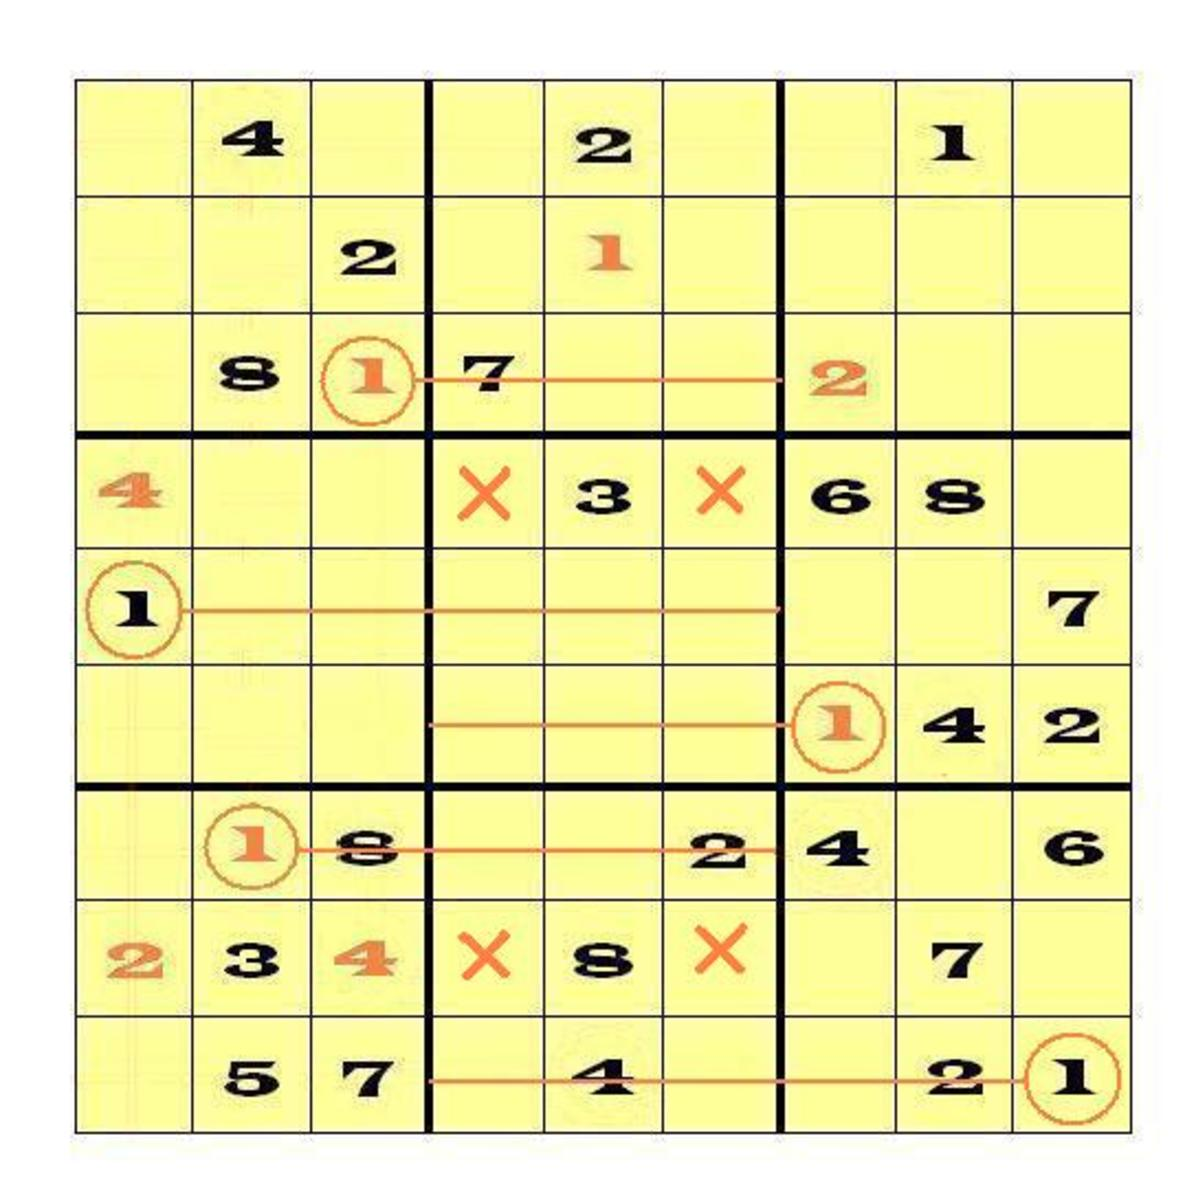 "Slice 'n' Dice shows that ""1"" must go either in the right or left column of both Block 8 and Block 5. Therefore, in the remaining block of that stack, Block 2, the ""1"" must go in the center column. One more scan reveals the cell."